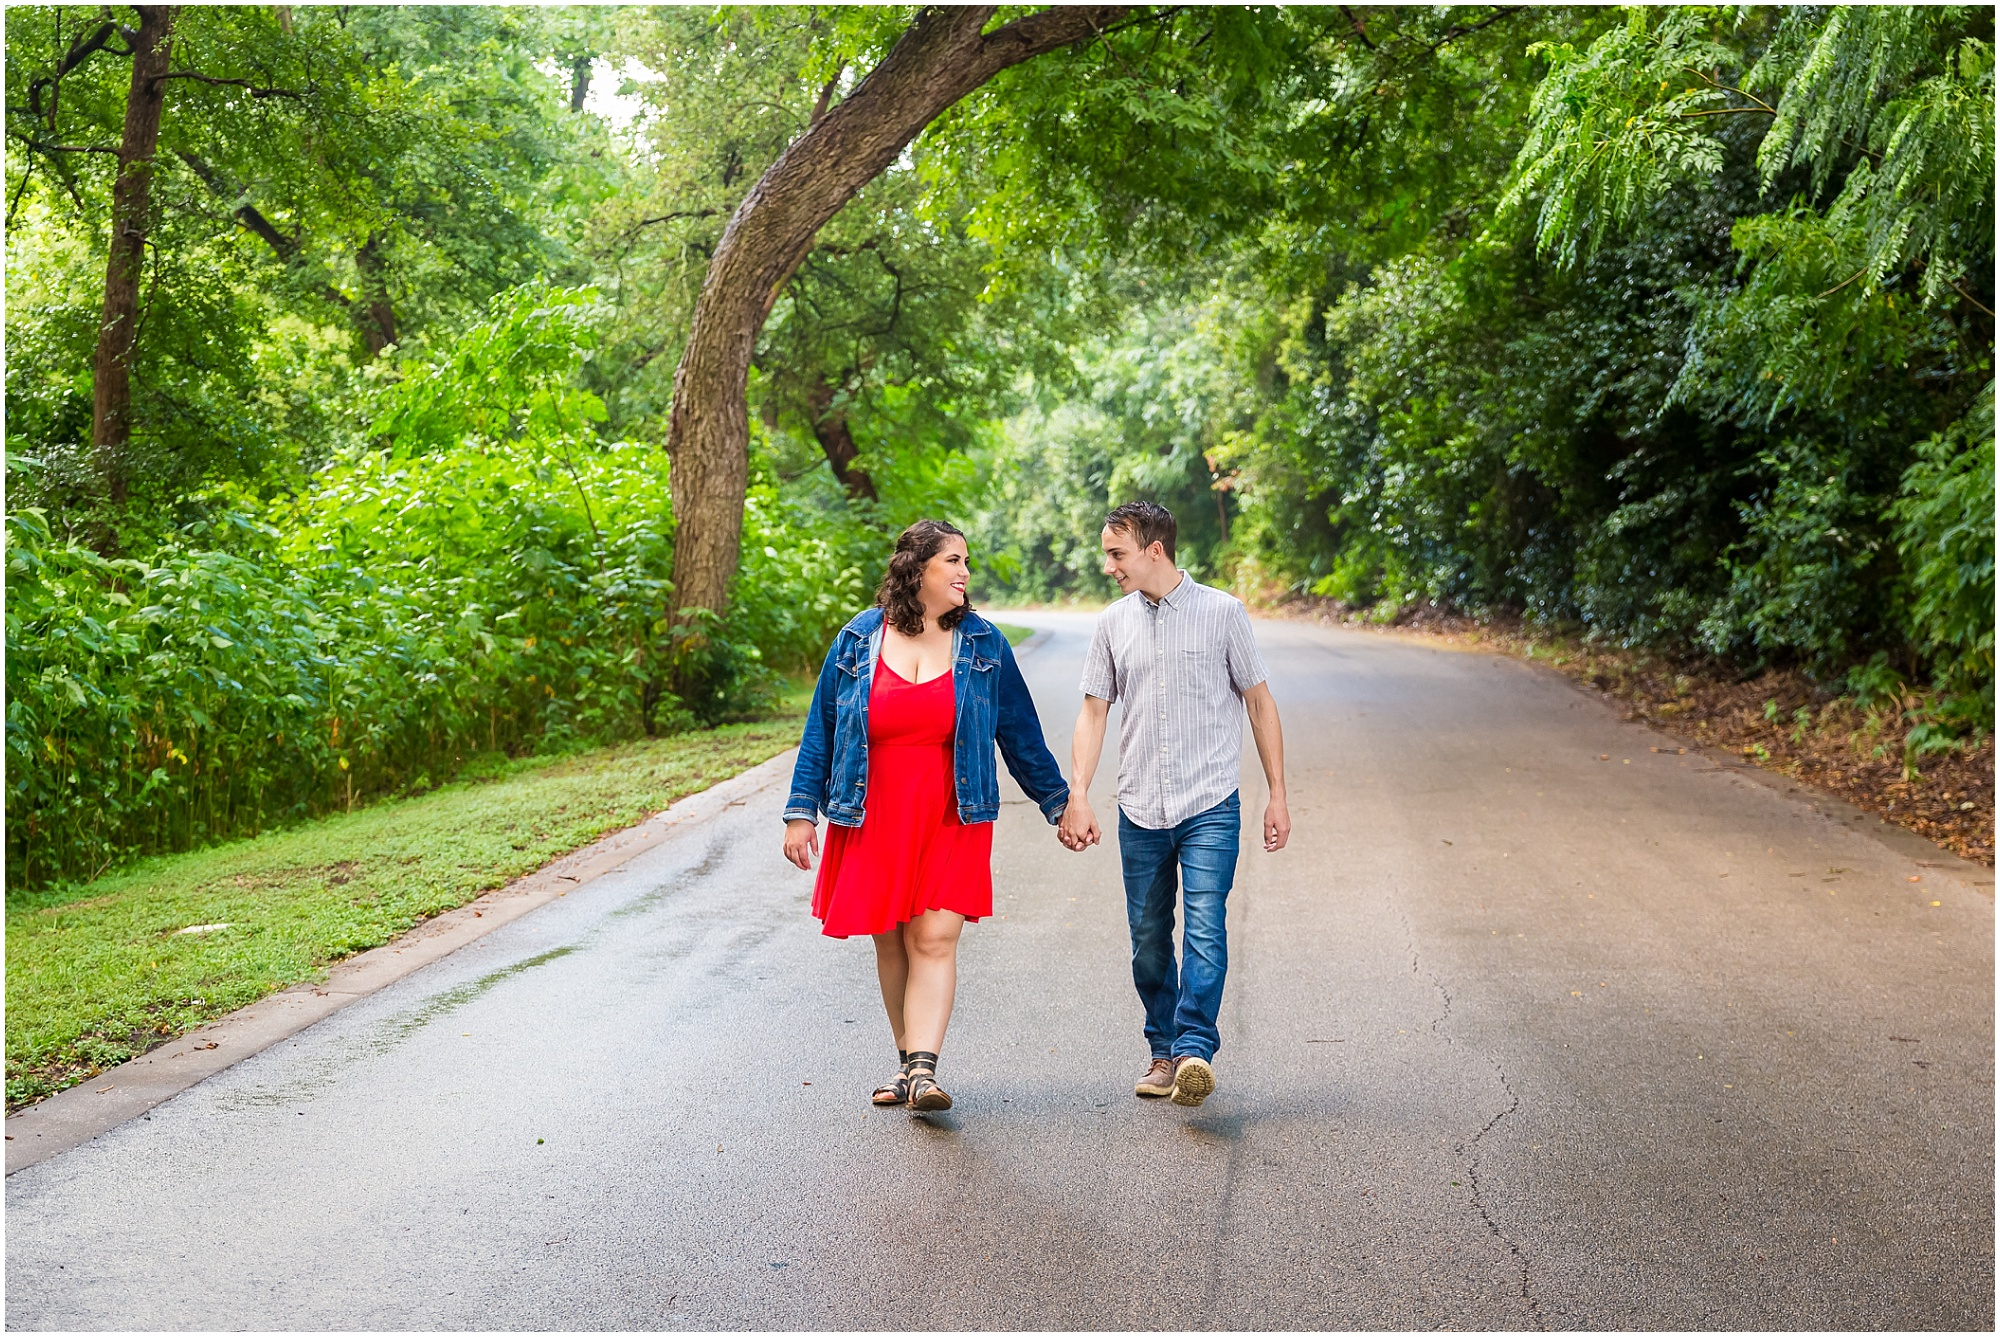 An engagement session in the rain at Cameron Park in Waco, Texas - Jason & Melaina Photography - www.jasonandmelaina.com